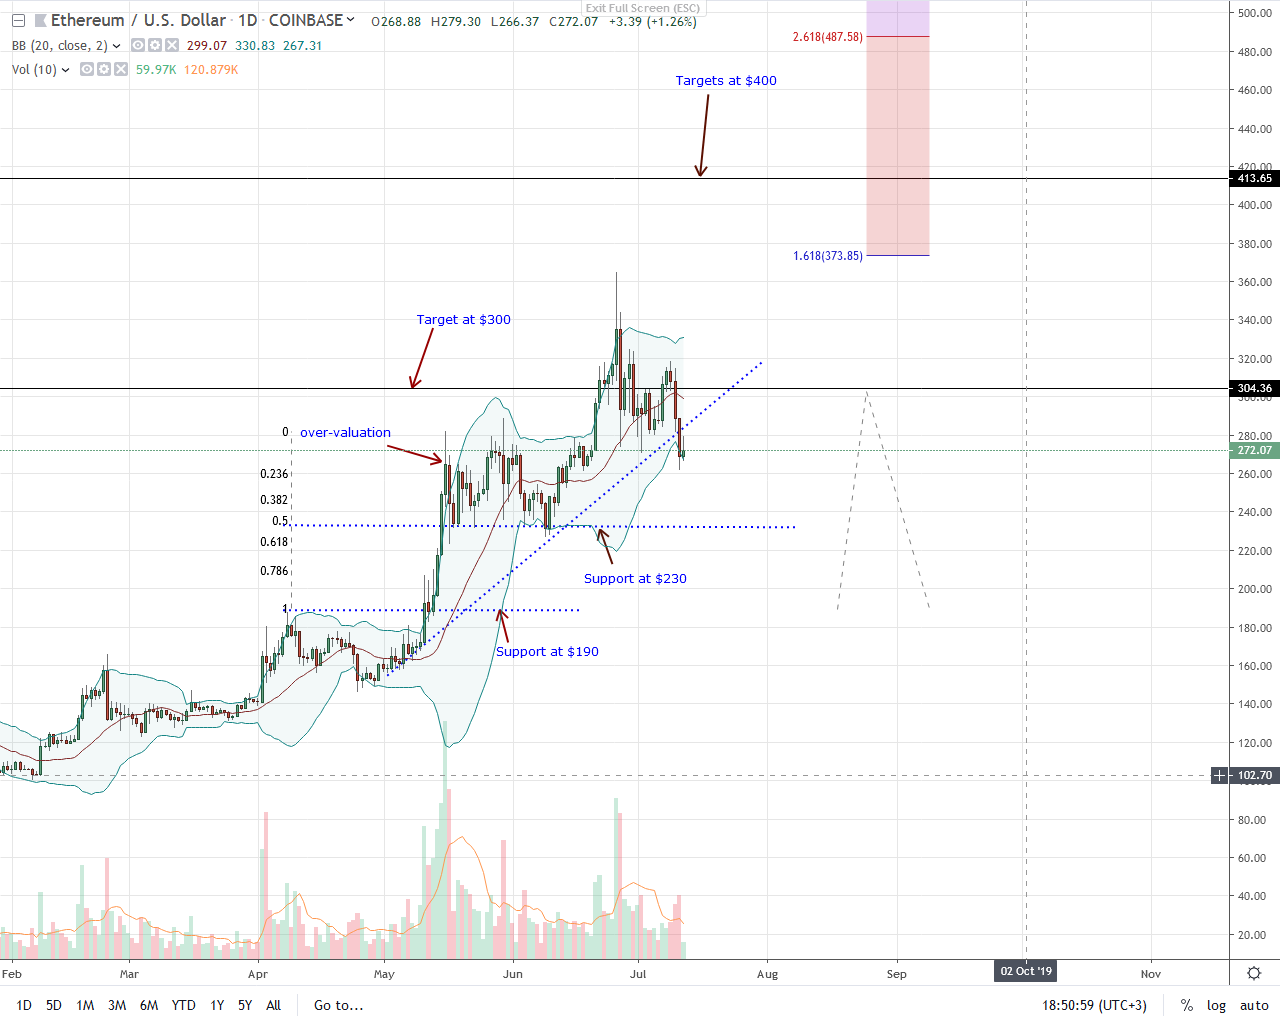 ChainLink (LINK) Price Analysis and Prediction 2019